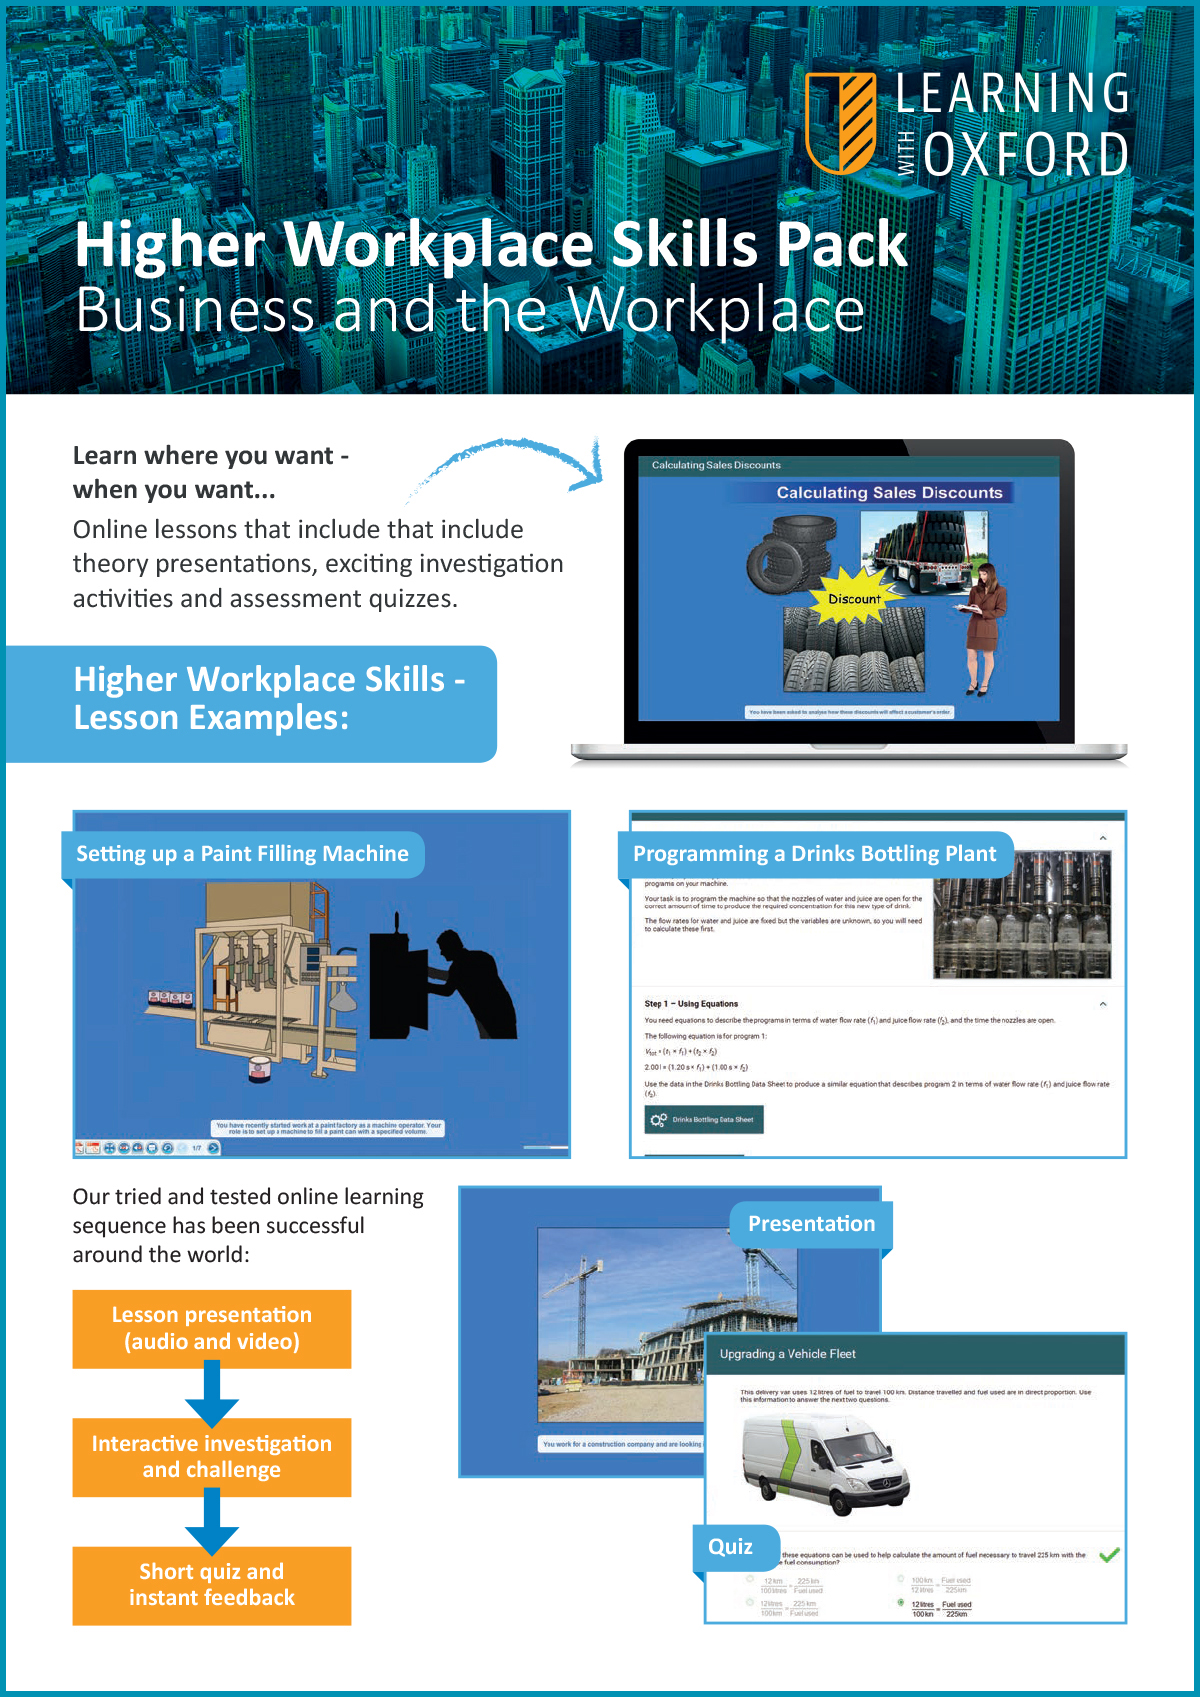 What lesson topics are covered with the licence? - Take a look at our Higher Workplace Skills InfoSheet to see a full topic listing.